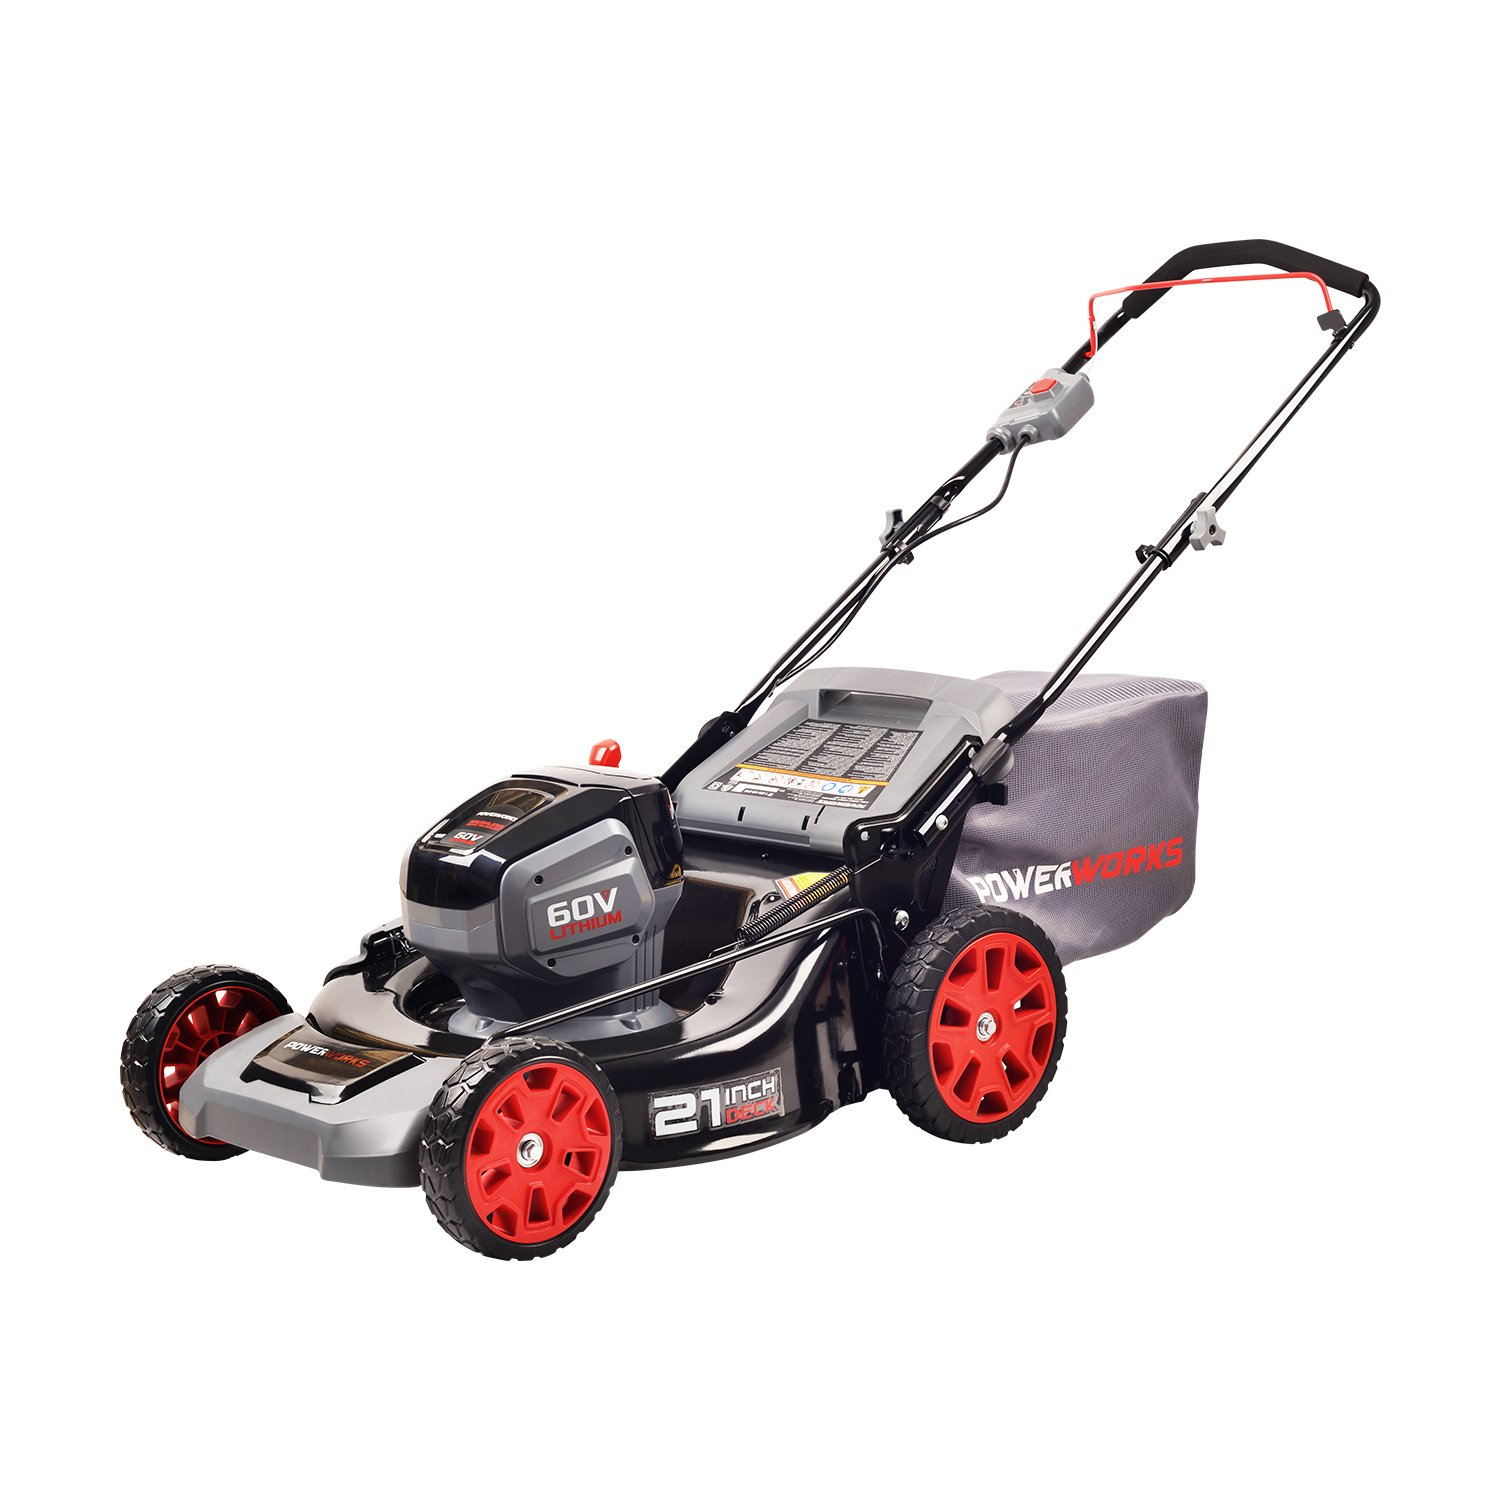 POWERWORKS 60V 21-inch Brushless HP Mower, Battery Not Included MO60L03PW